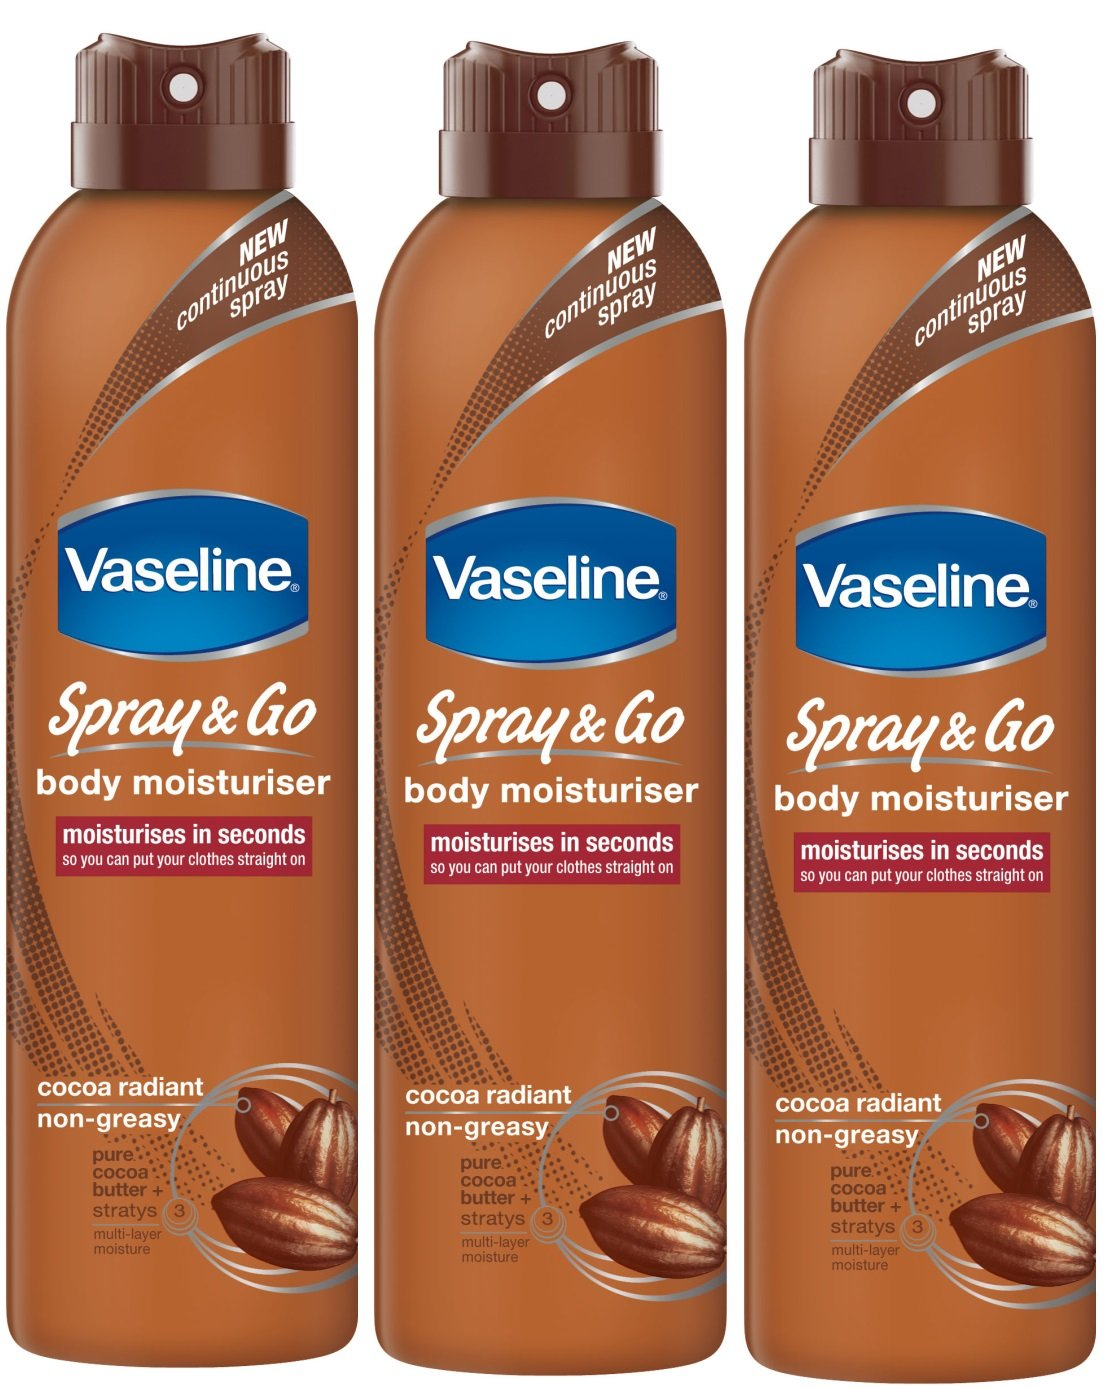 Vaseline Spray & Go Body Moisturiser Cocoa Radiant - 3 x 190ml